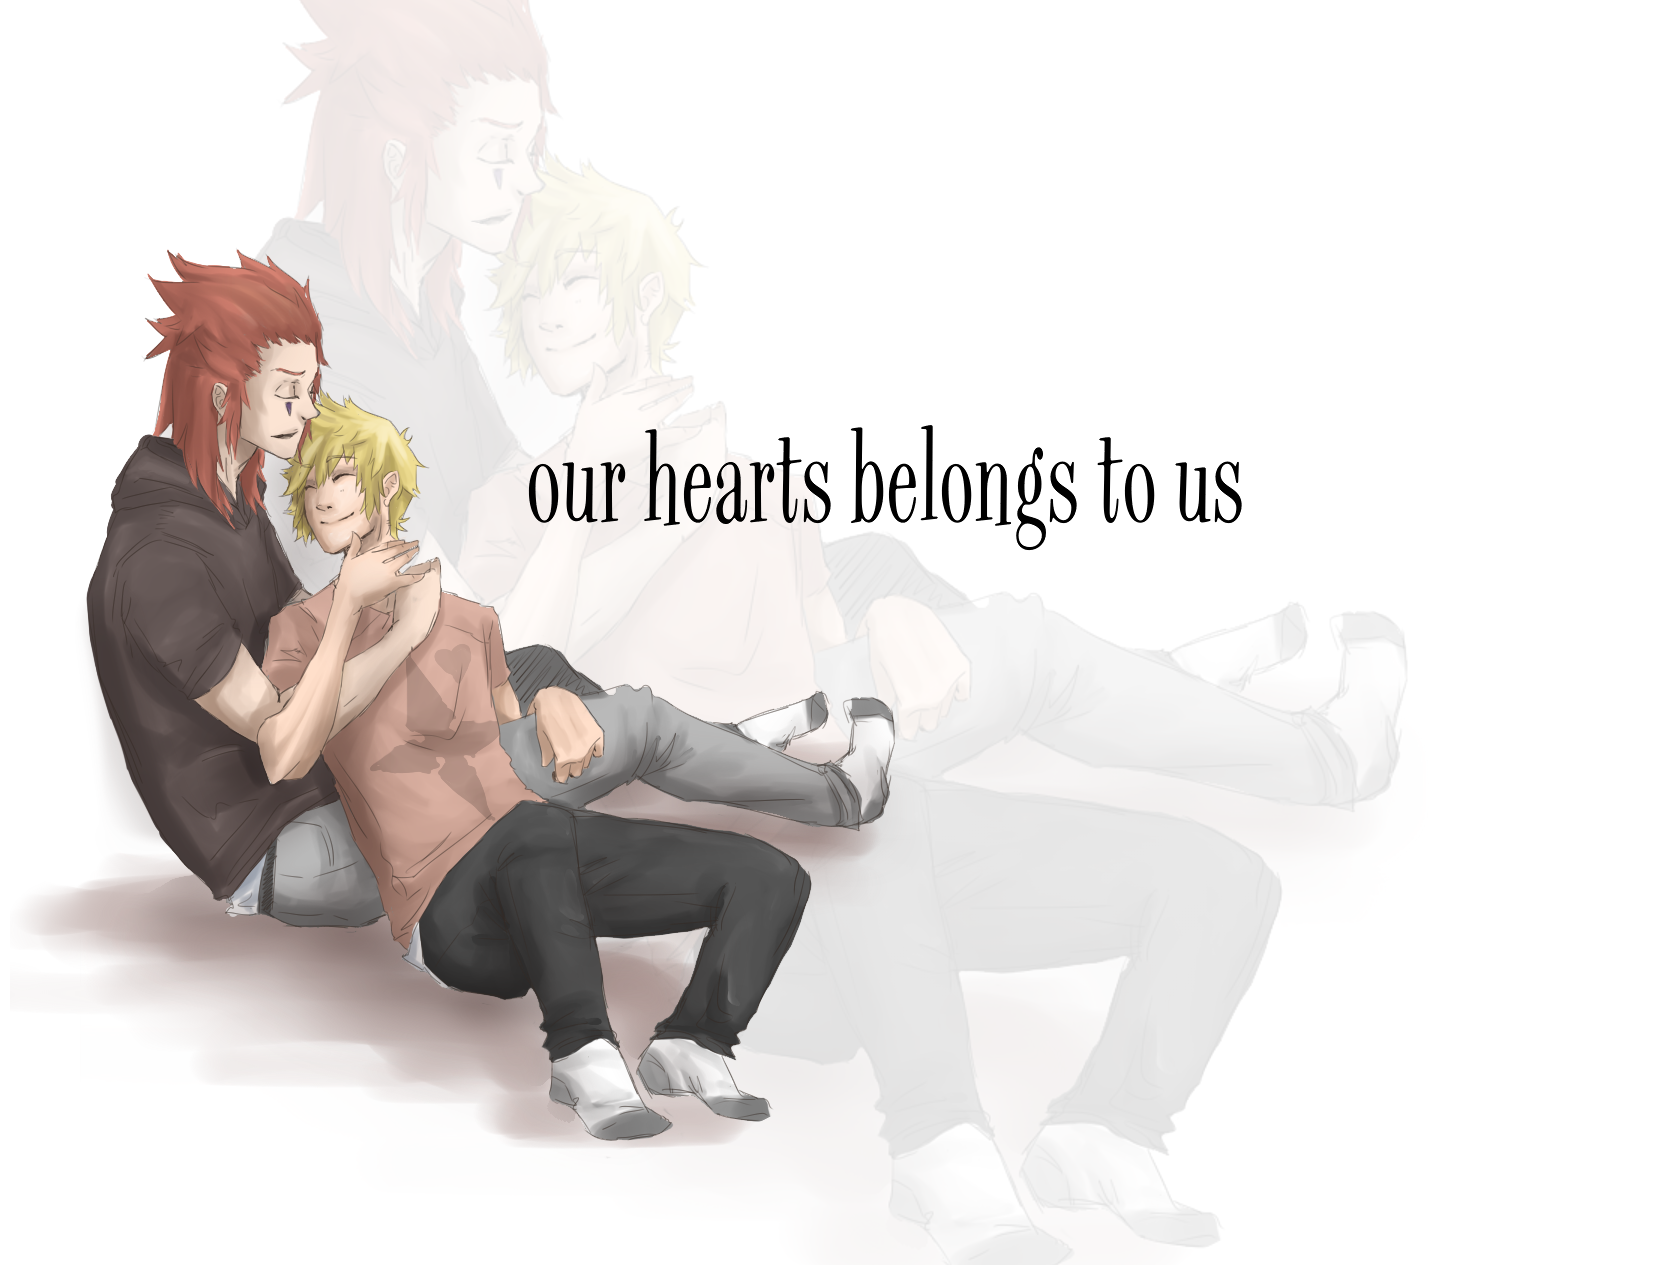 Our hearts belongs to us by Gamesoul